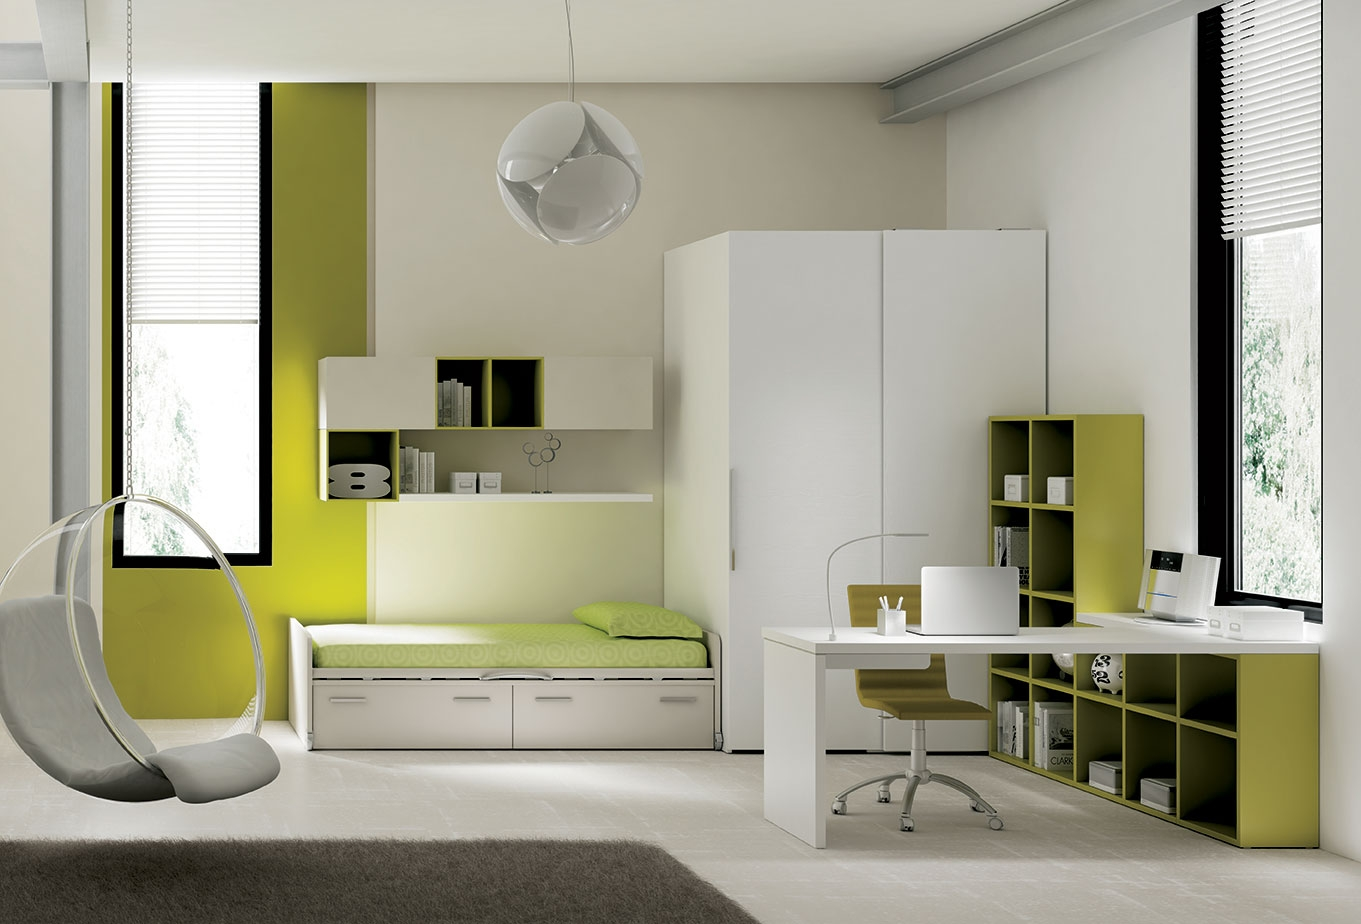 chambre ado avec lit avec rangement moretti compact so nuit. Black Bedroom Furniture Sets. Home Design Ideas